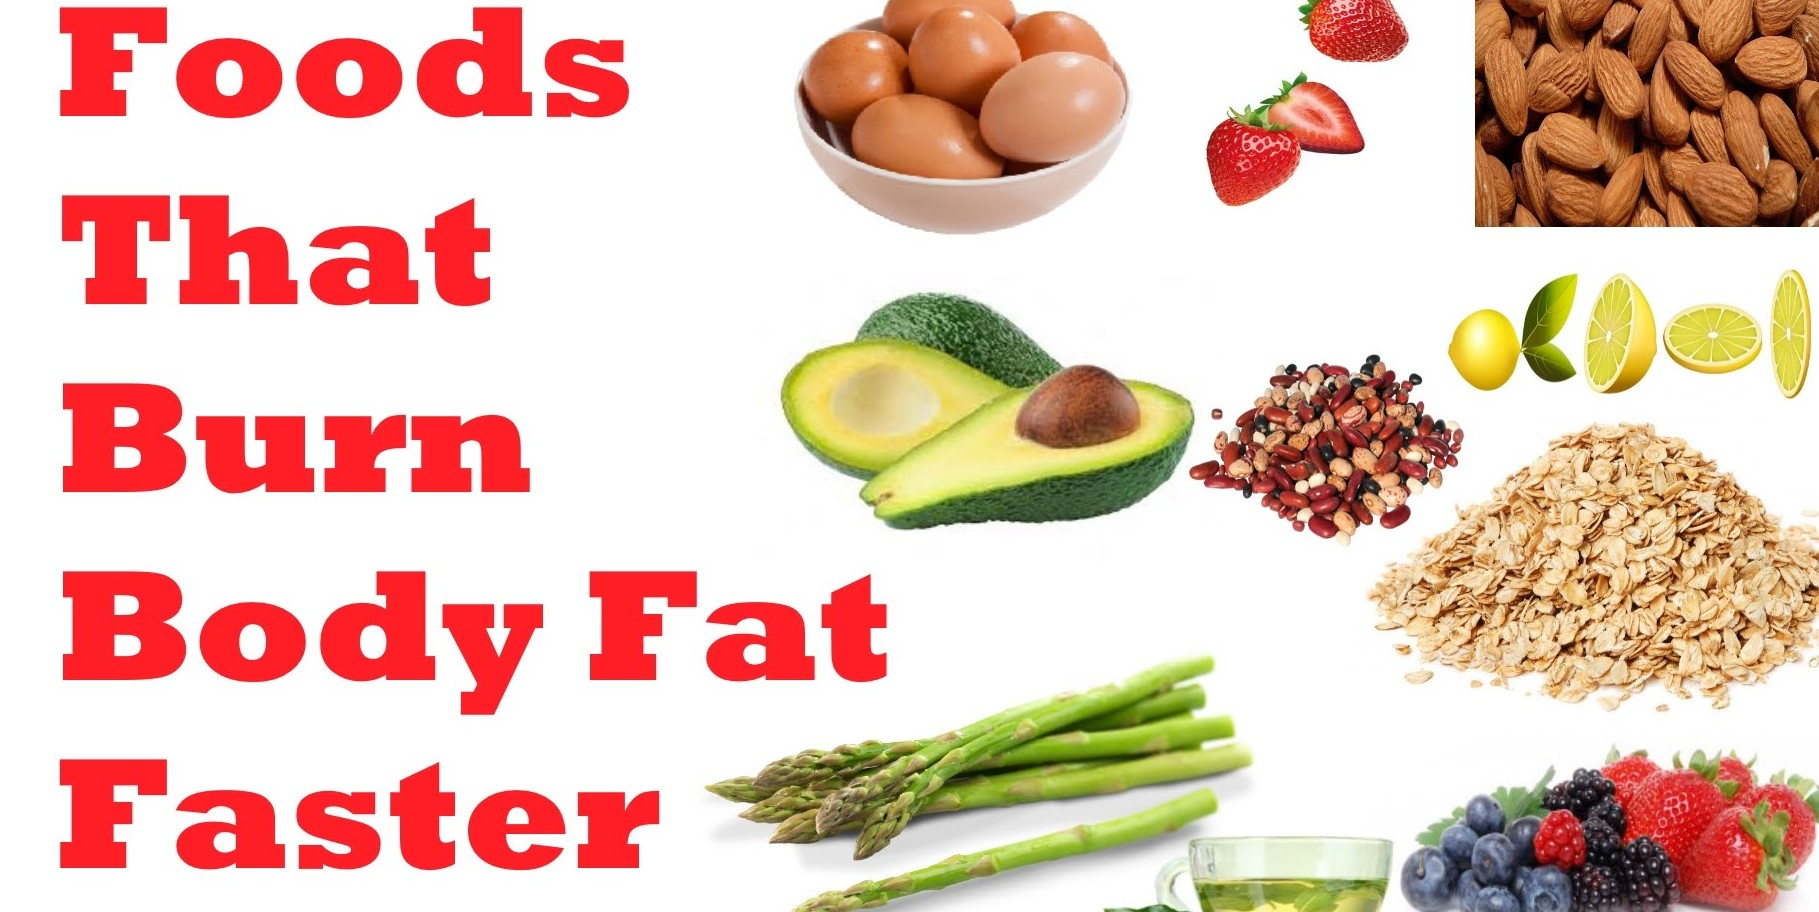 10 Most Obvious Fat Burning Low Calorie Food